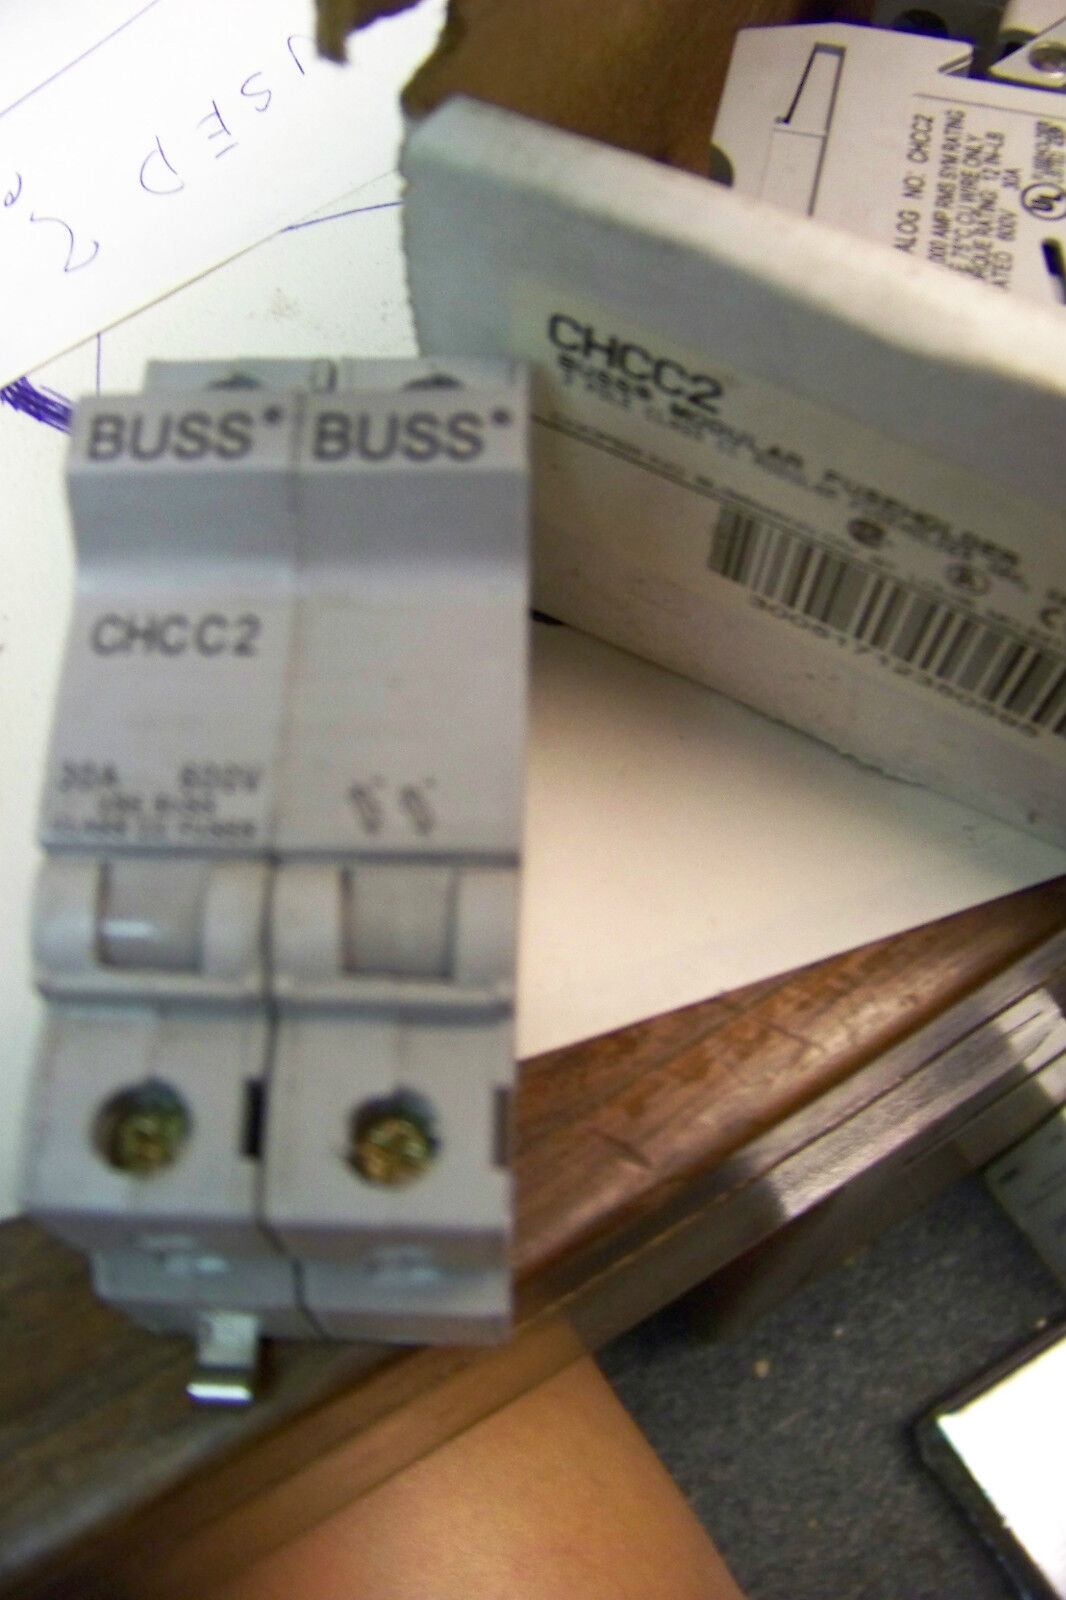 New Cooper Bussmann Chcc2 Fuse Block 2 Pole 30 Amp 2299 Picclick Buss Box 1 Of 1only Available